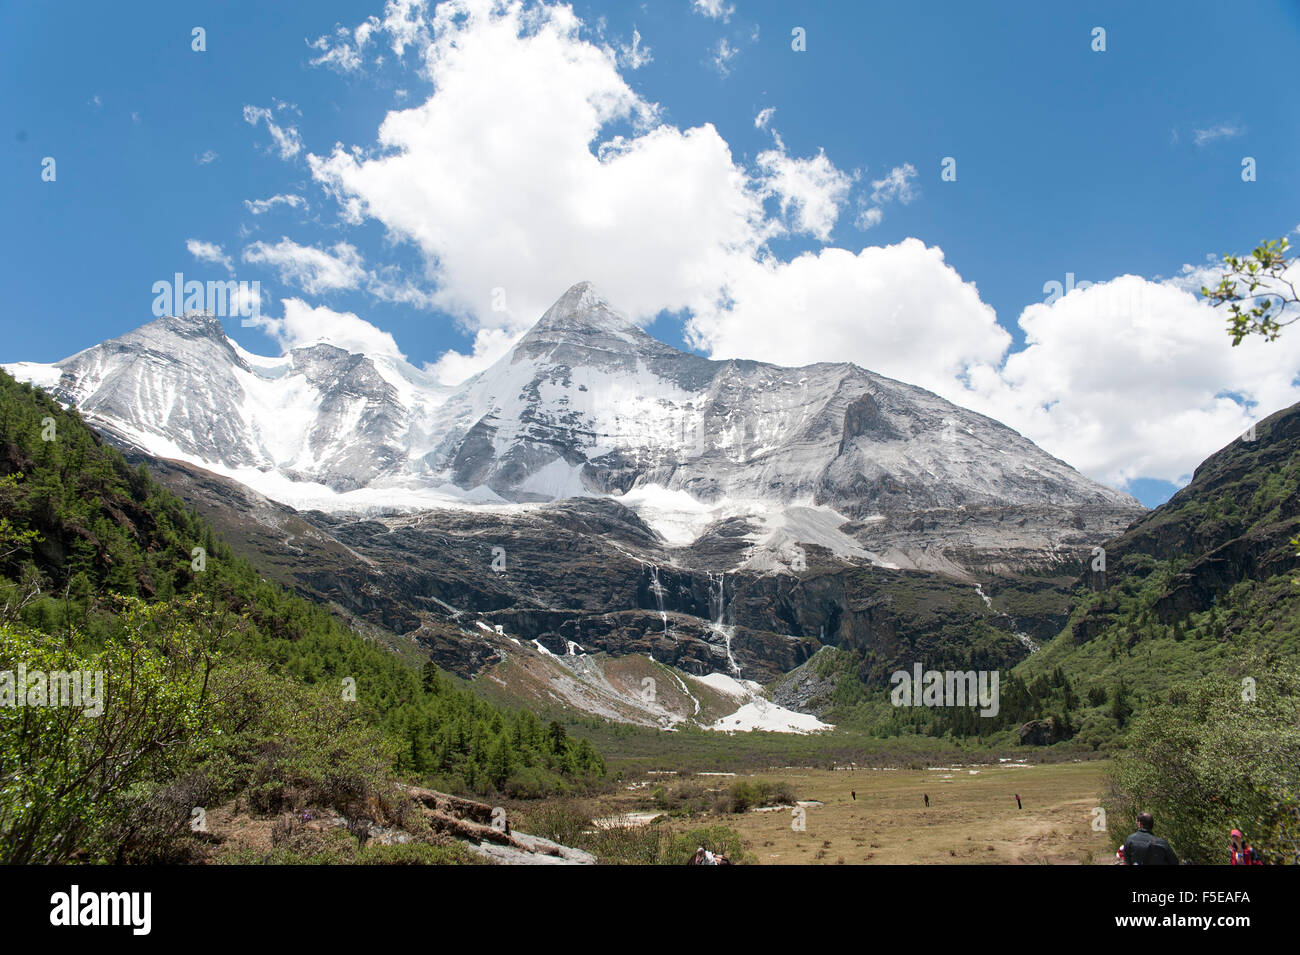 Tibet snow mountain with Grassland in China - Stock Image